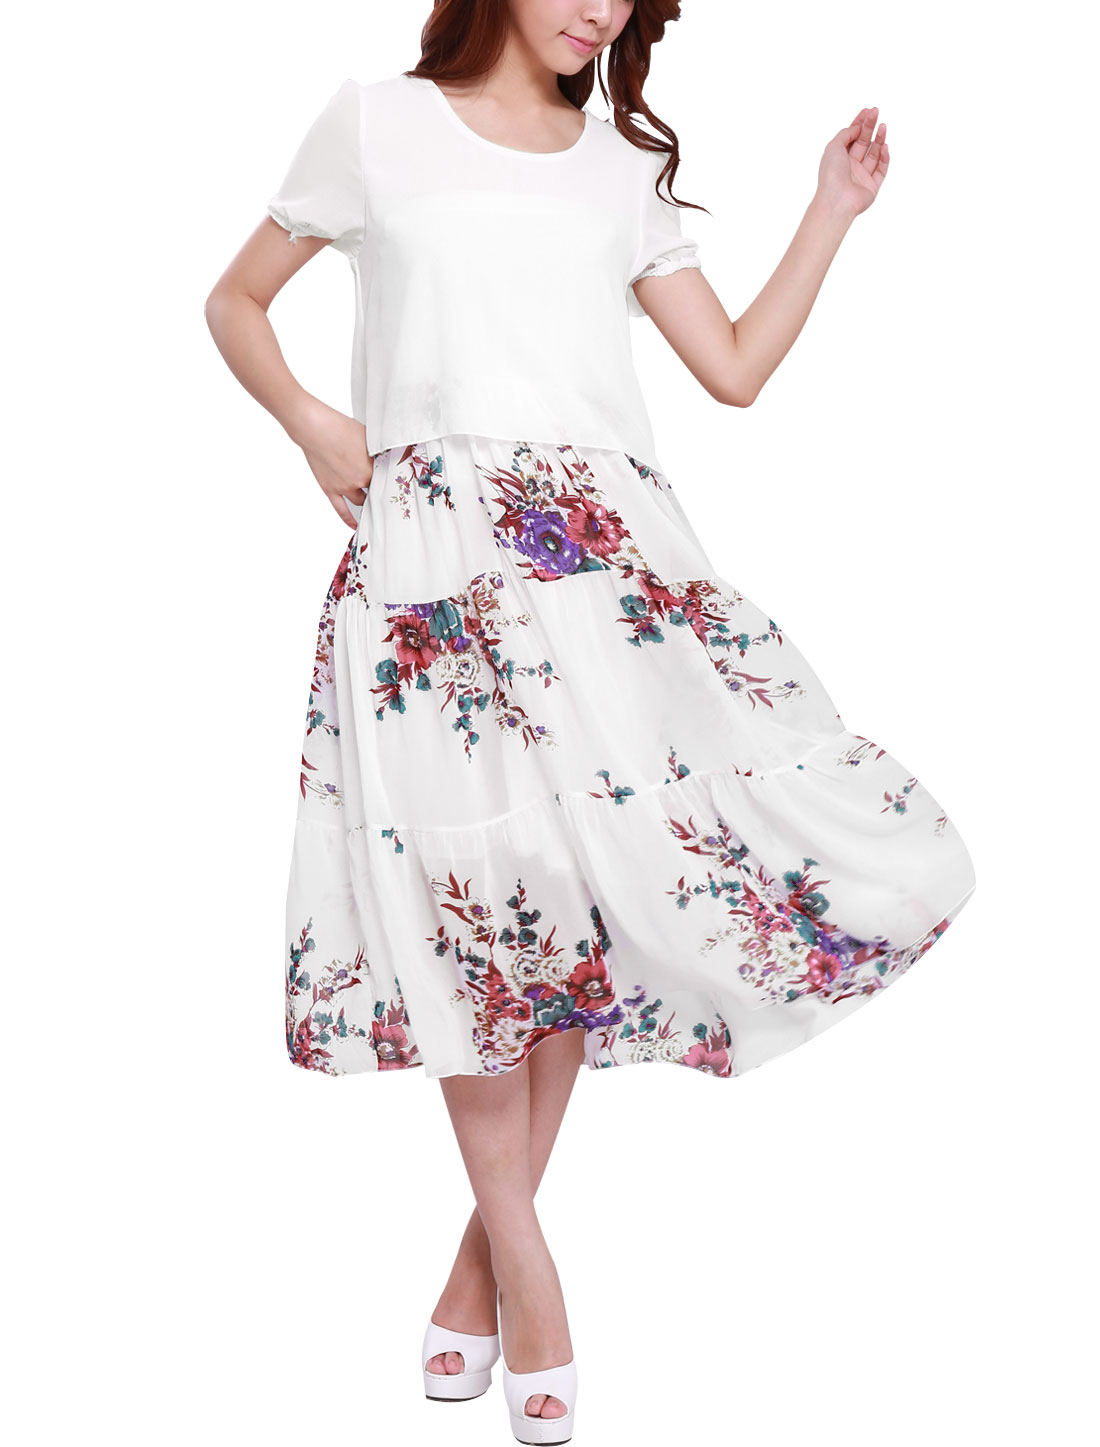 Lady Short Sleeve Floral Prints Peasant Style Dress White S